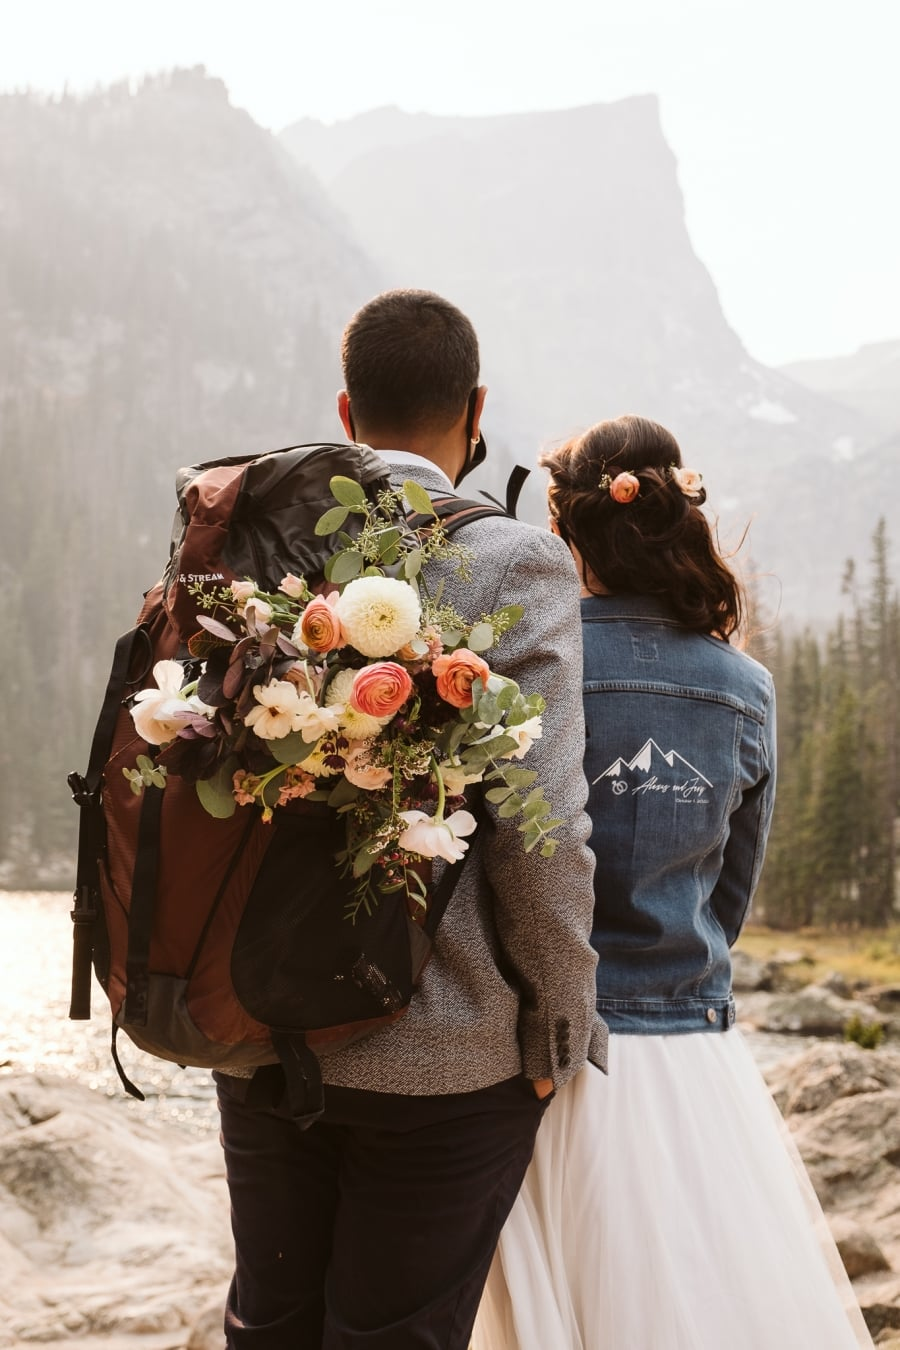 Hiking backpack with adventure elopement gear